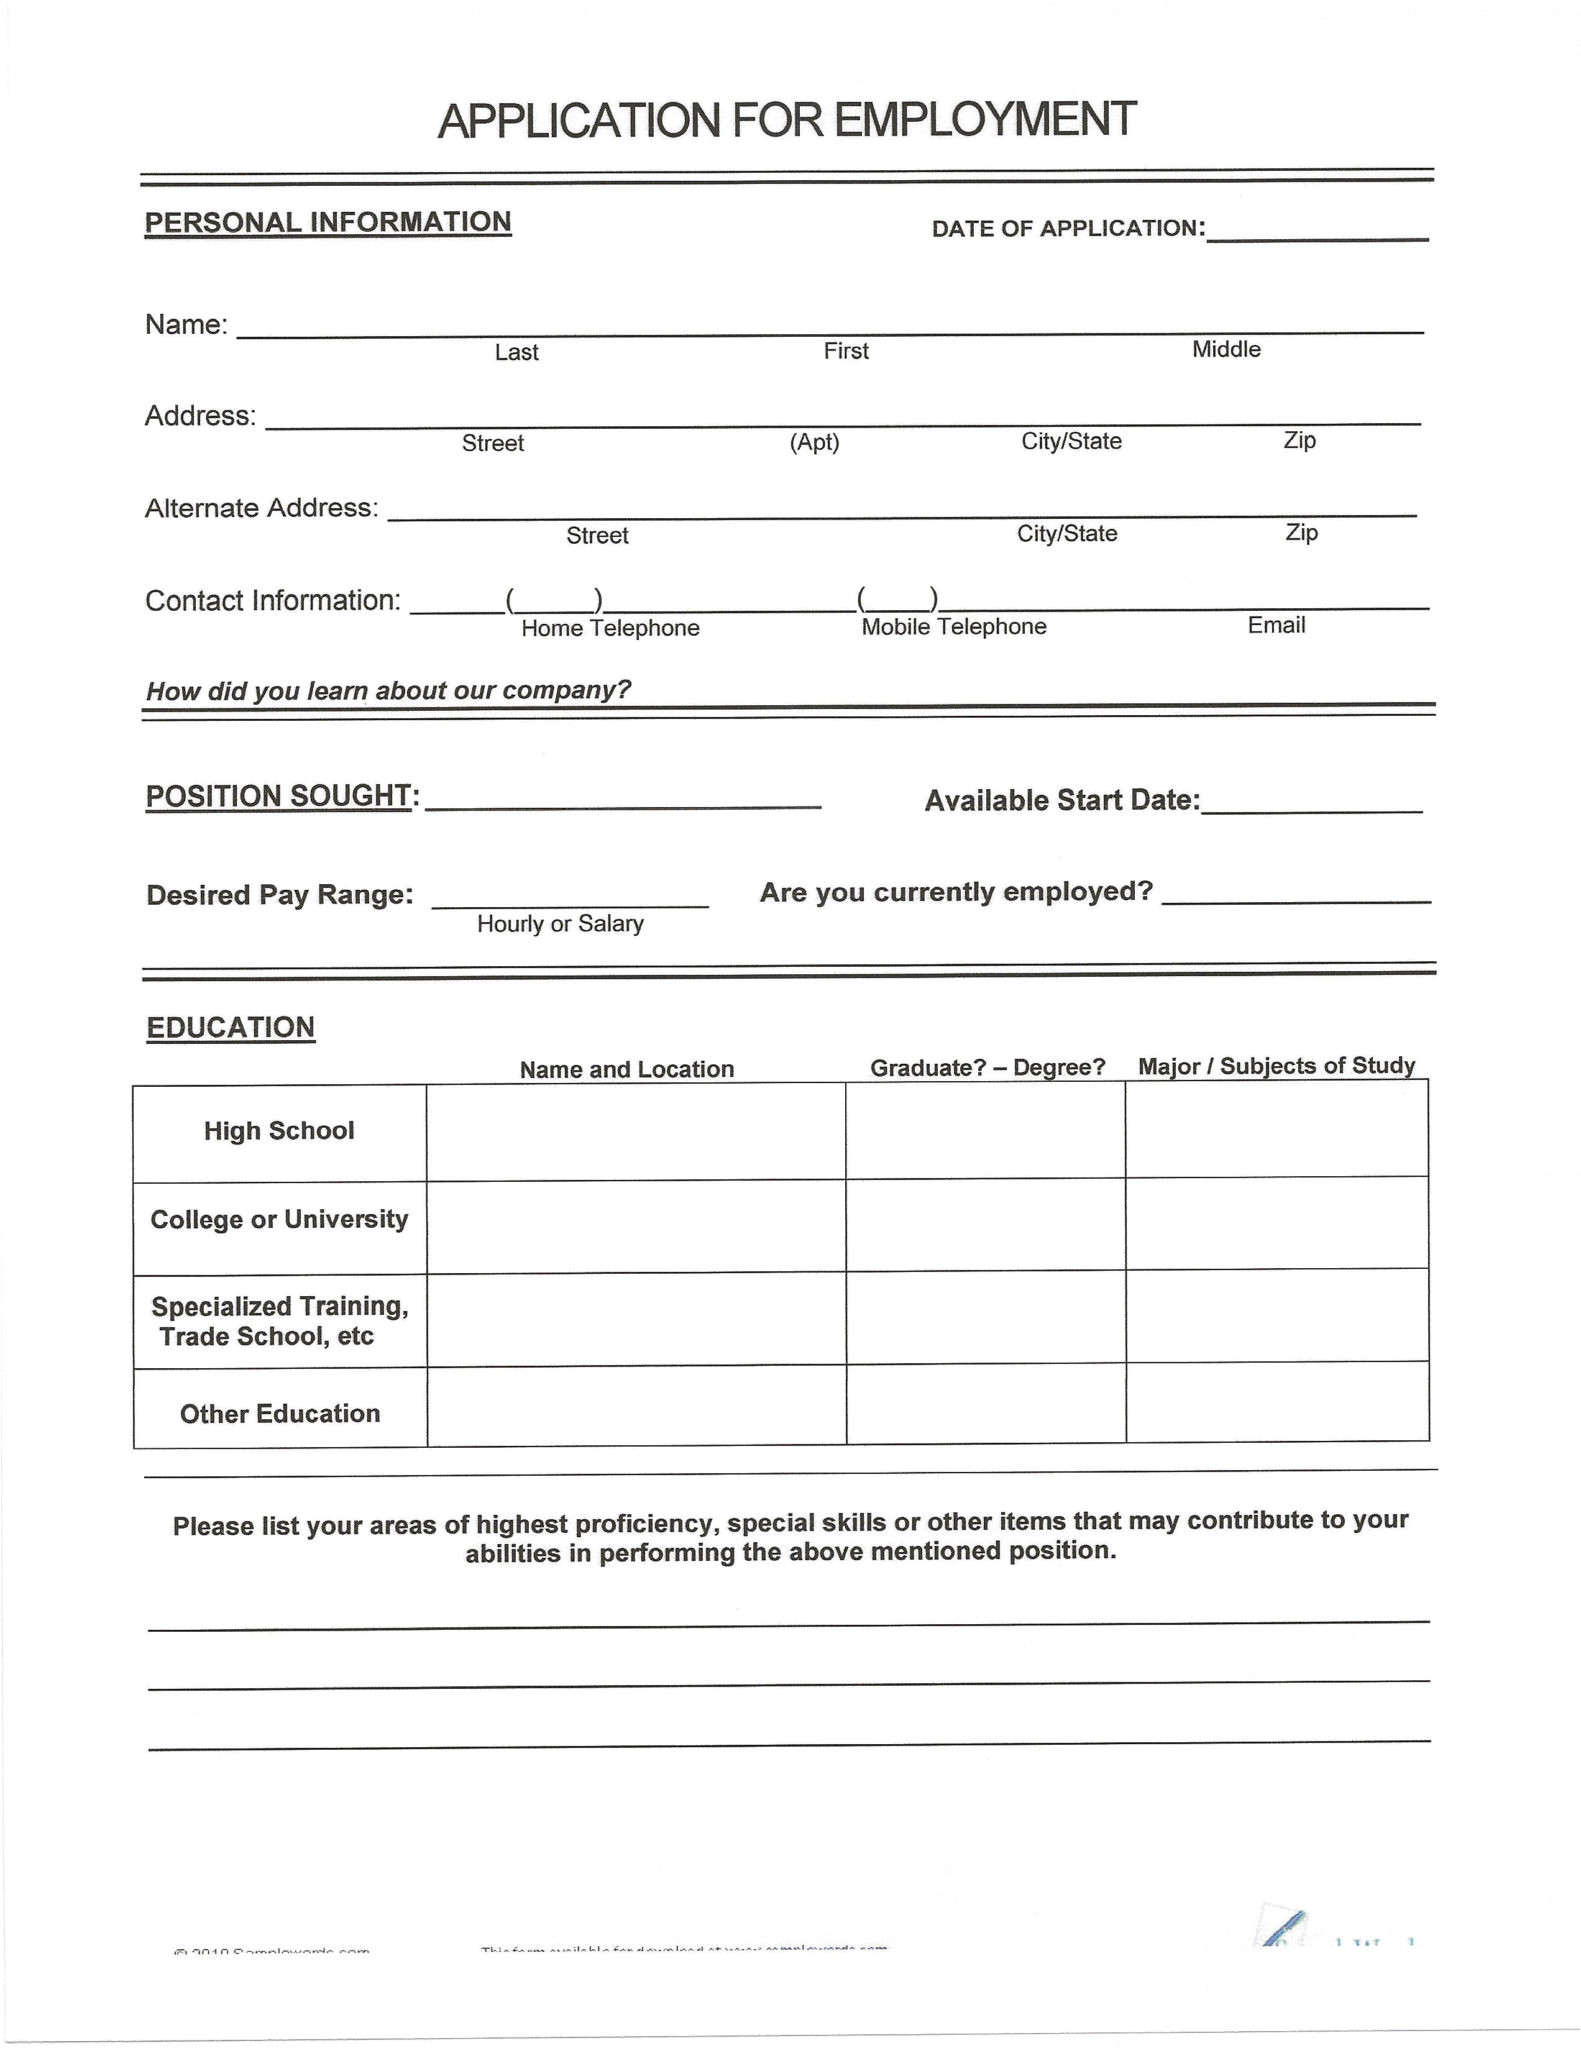 Blank Resume to Fill Out and Print Resume format Blank Resume form to Fill Out